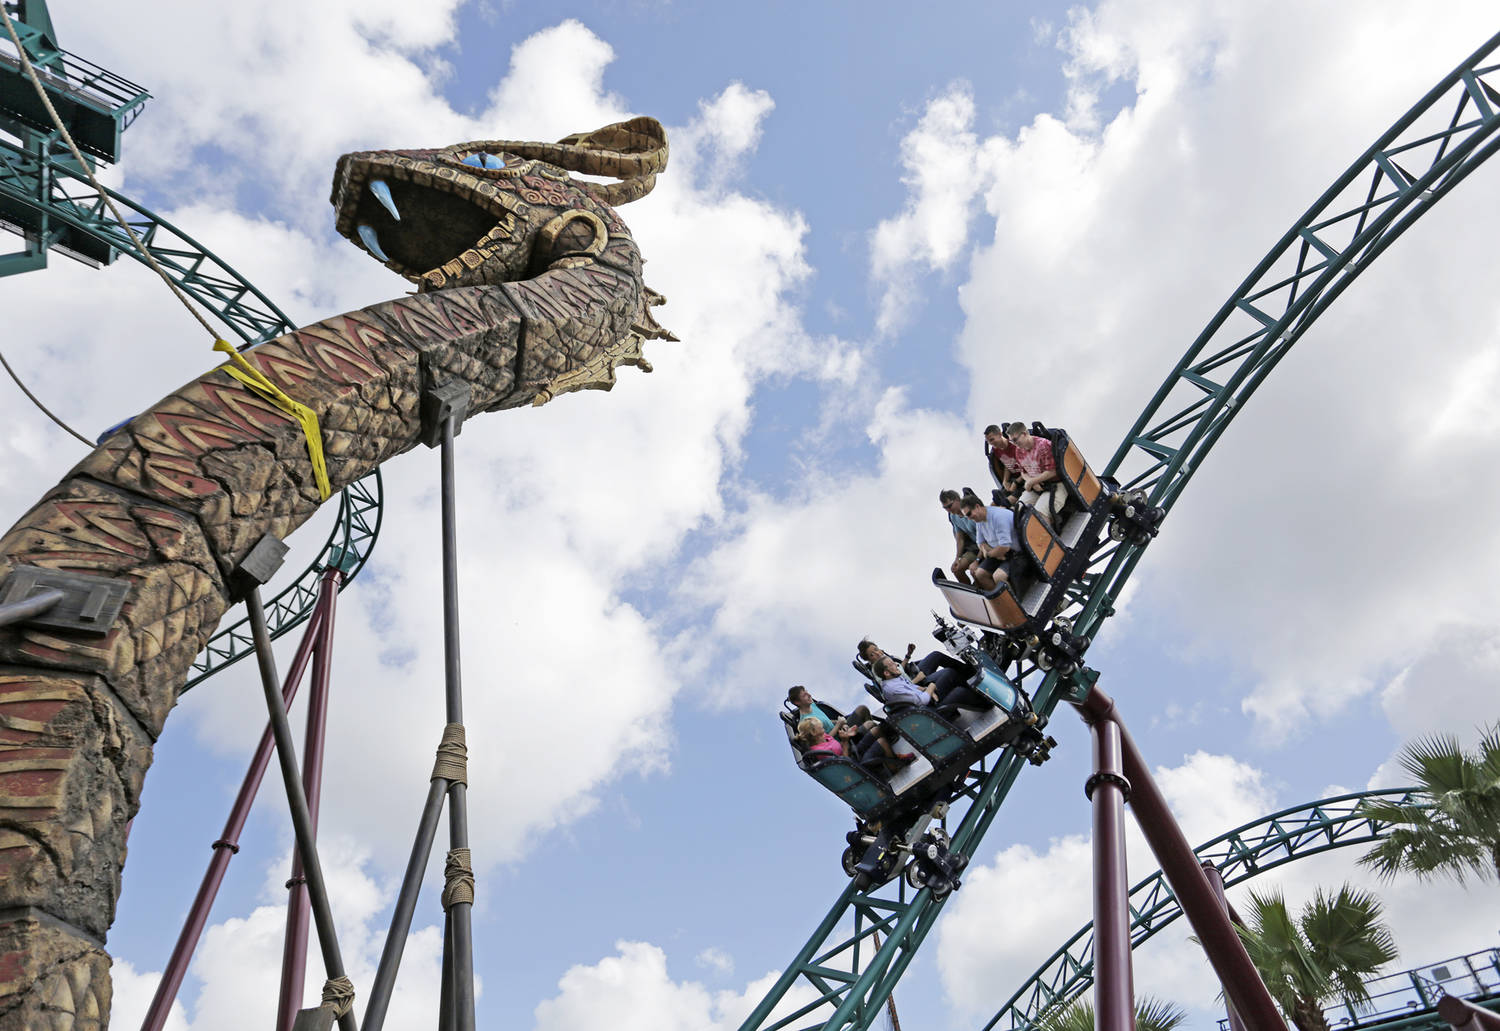 Busch gardens things to do tampa bay times for Busch gardens tampa bay cobra s curse